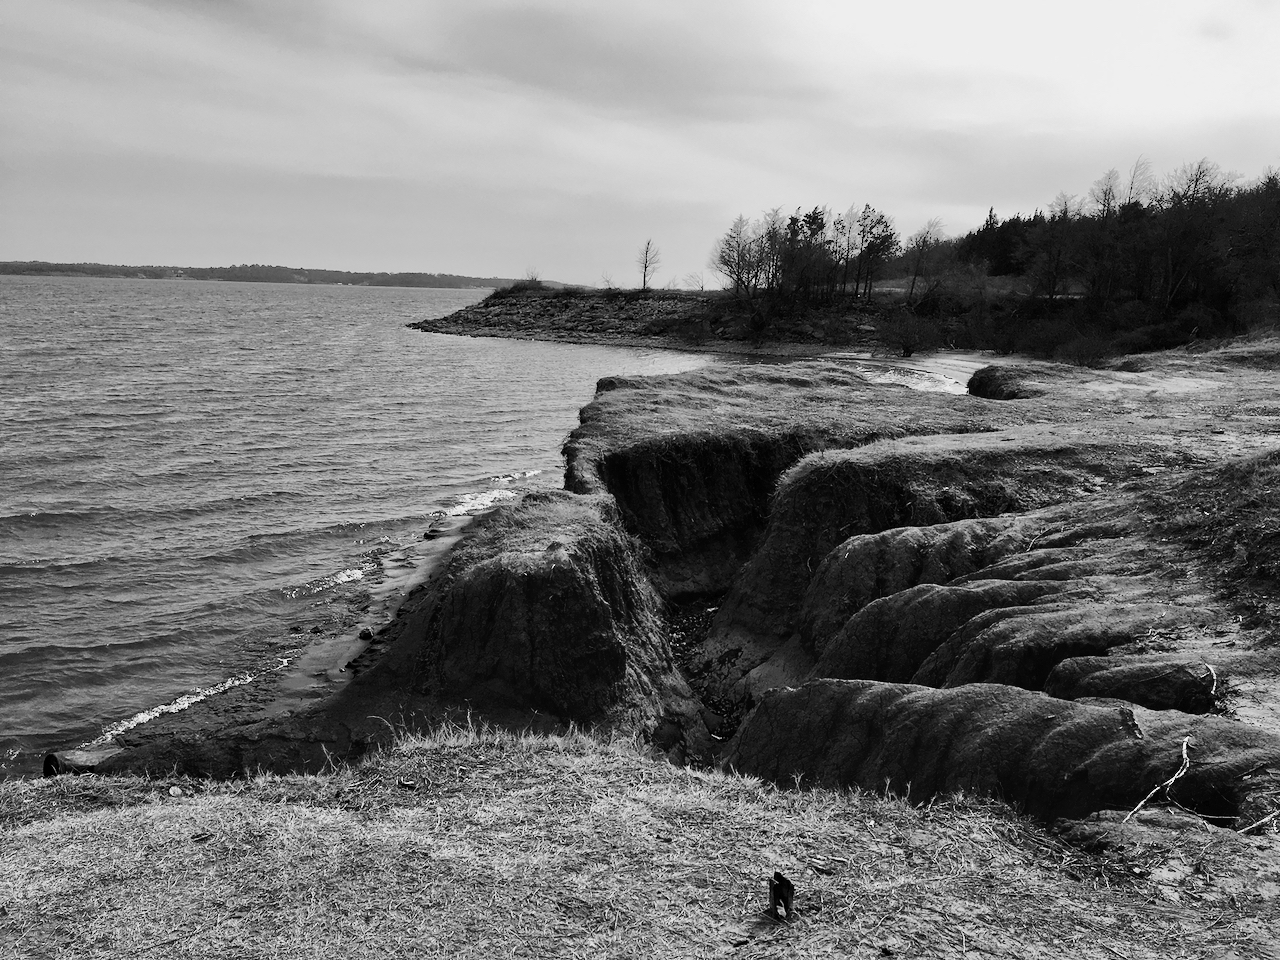 Eroding Adventures From THAT Place: MonochromeMonday